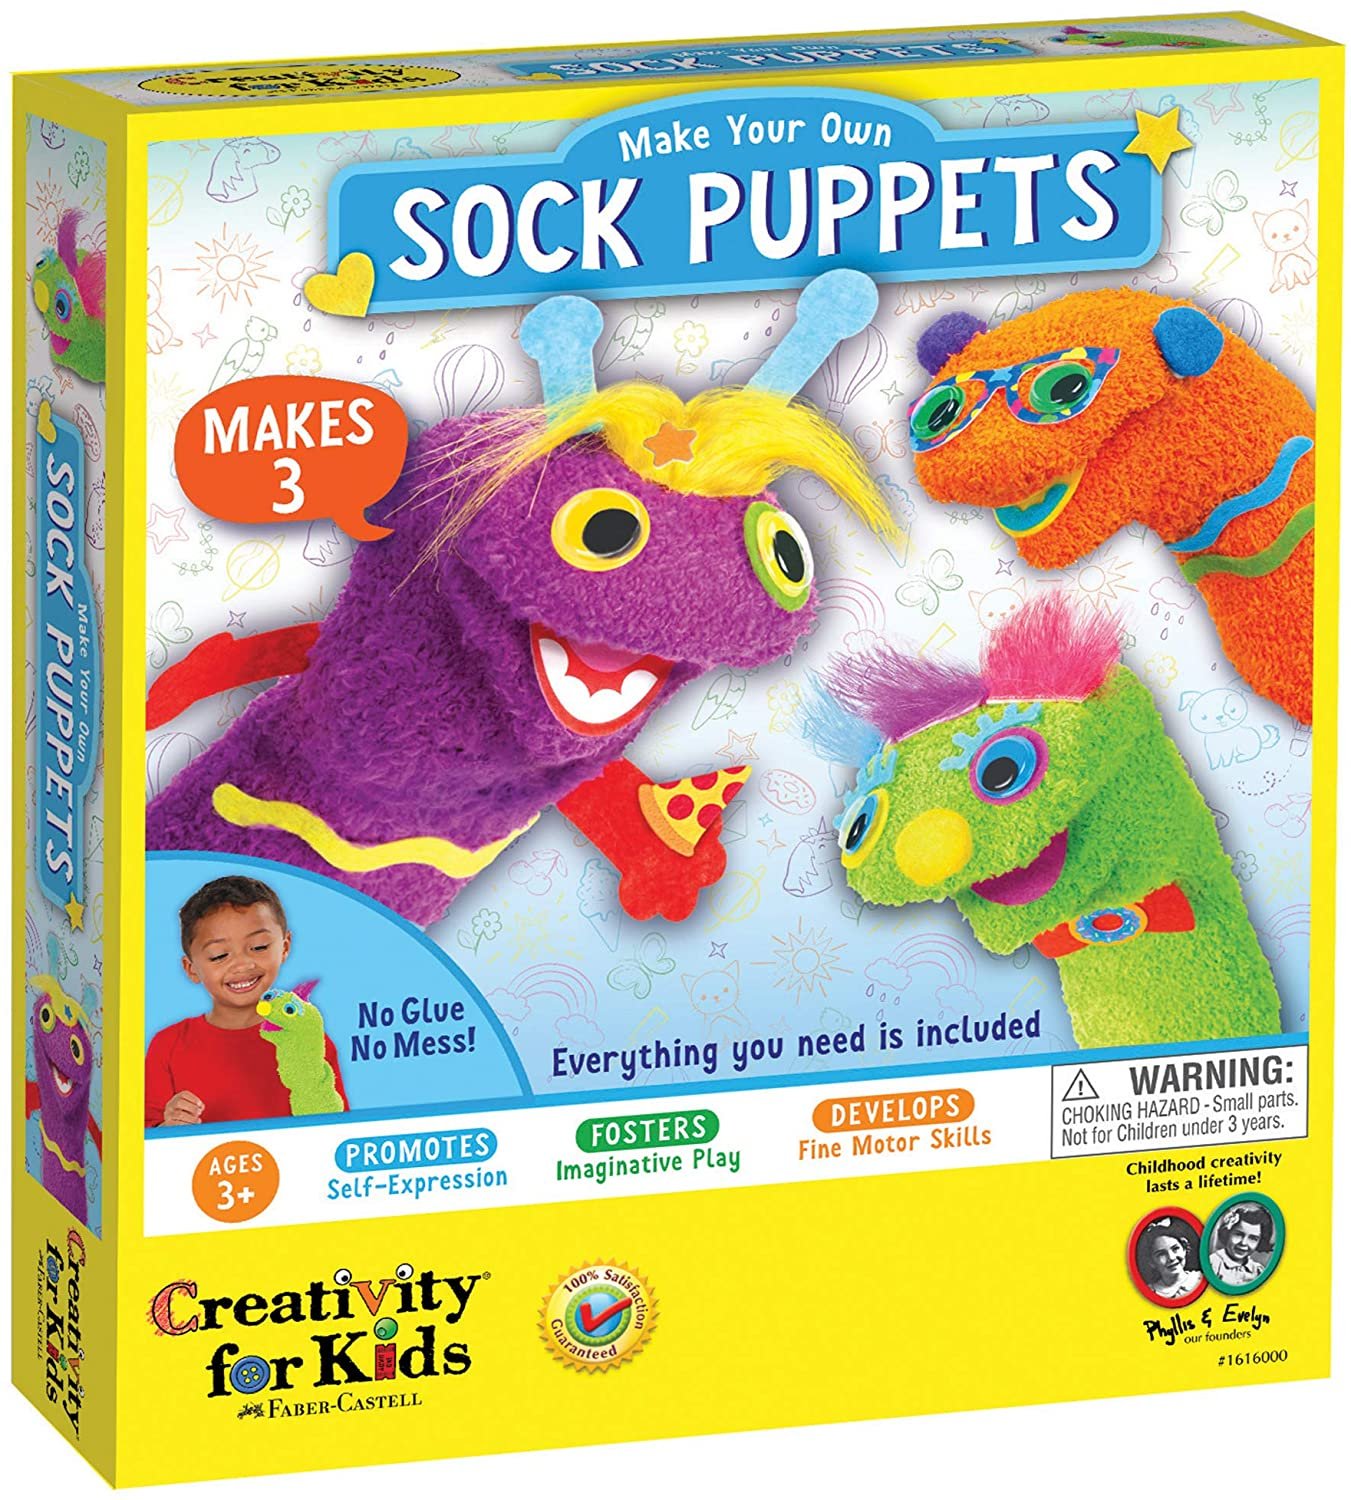 Make Your Own Sock Puppets 3+